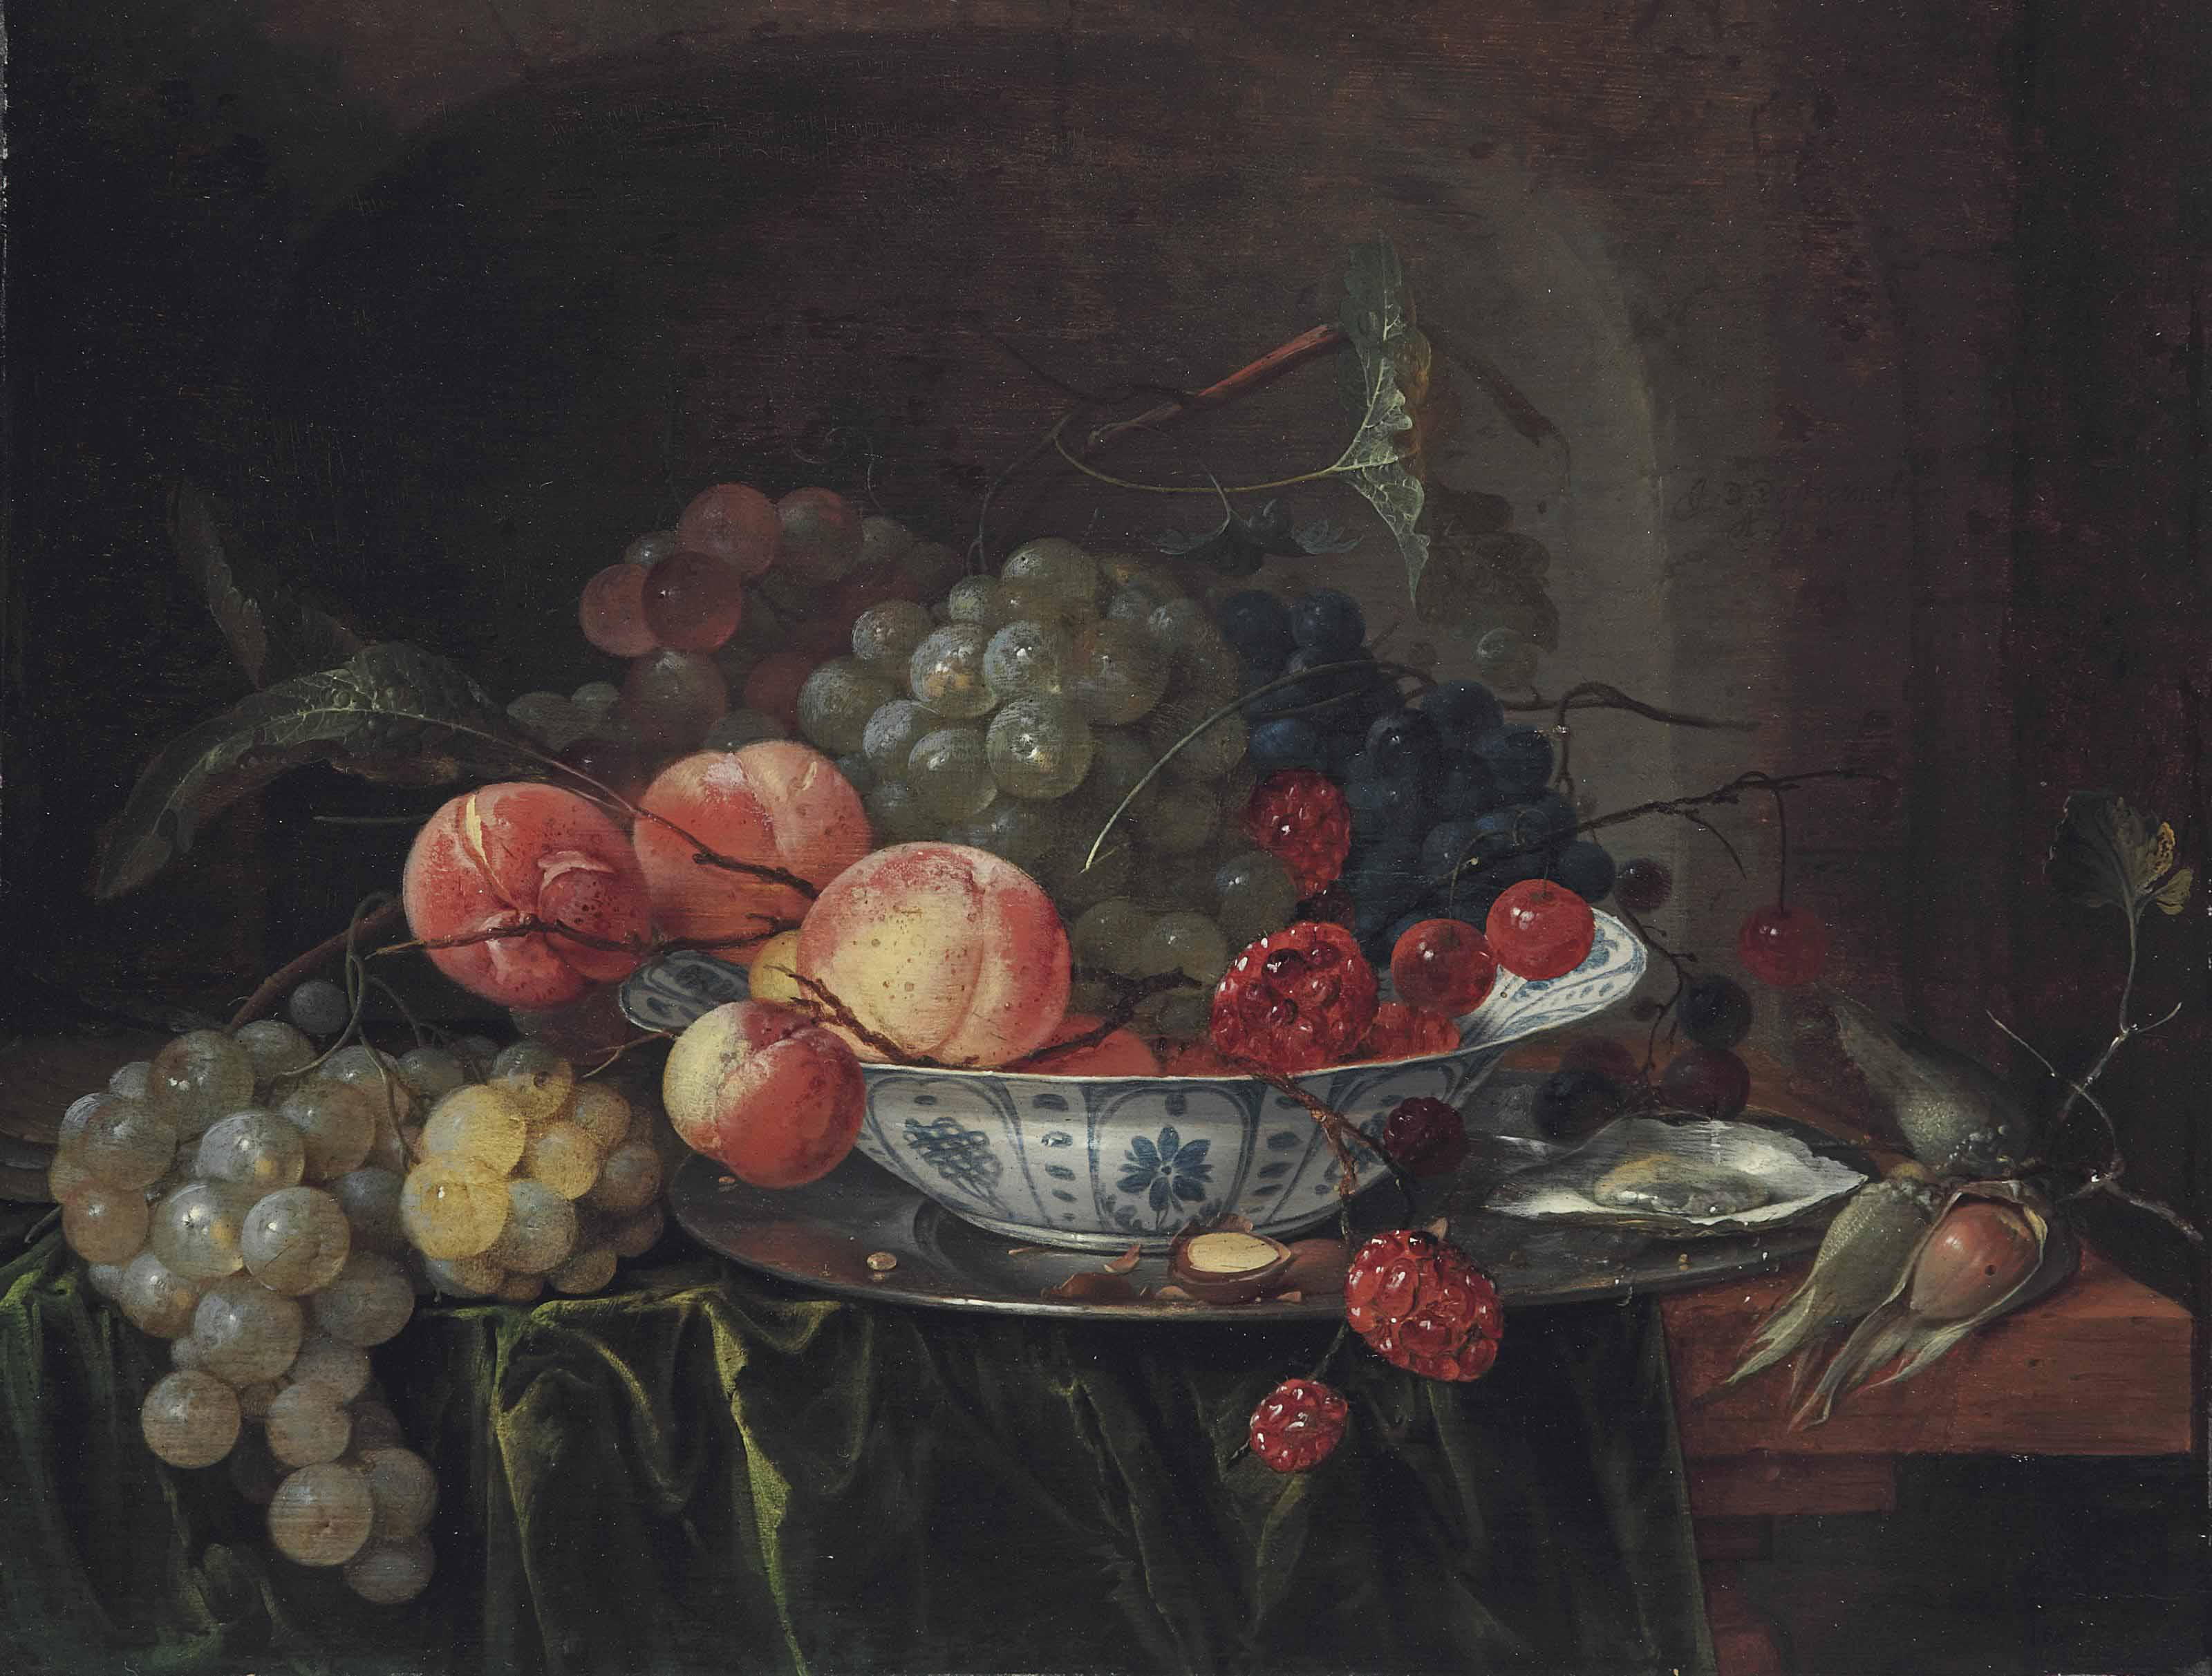 https://www.christies.com/img/LotImages/2014/NYR/2014_NYR_02855_0007_000(jan_davidsz_de_heem_grapes_and_apples_in_a_wan-li_dish_with_oysters_on).jpg